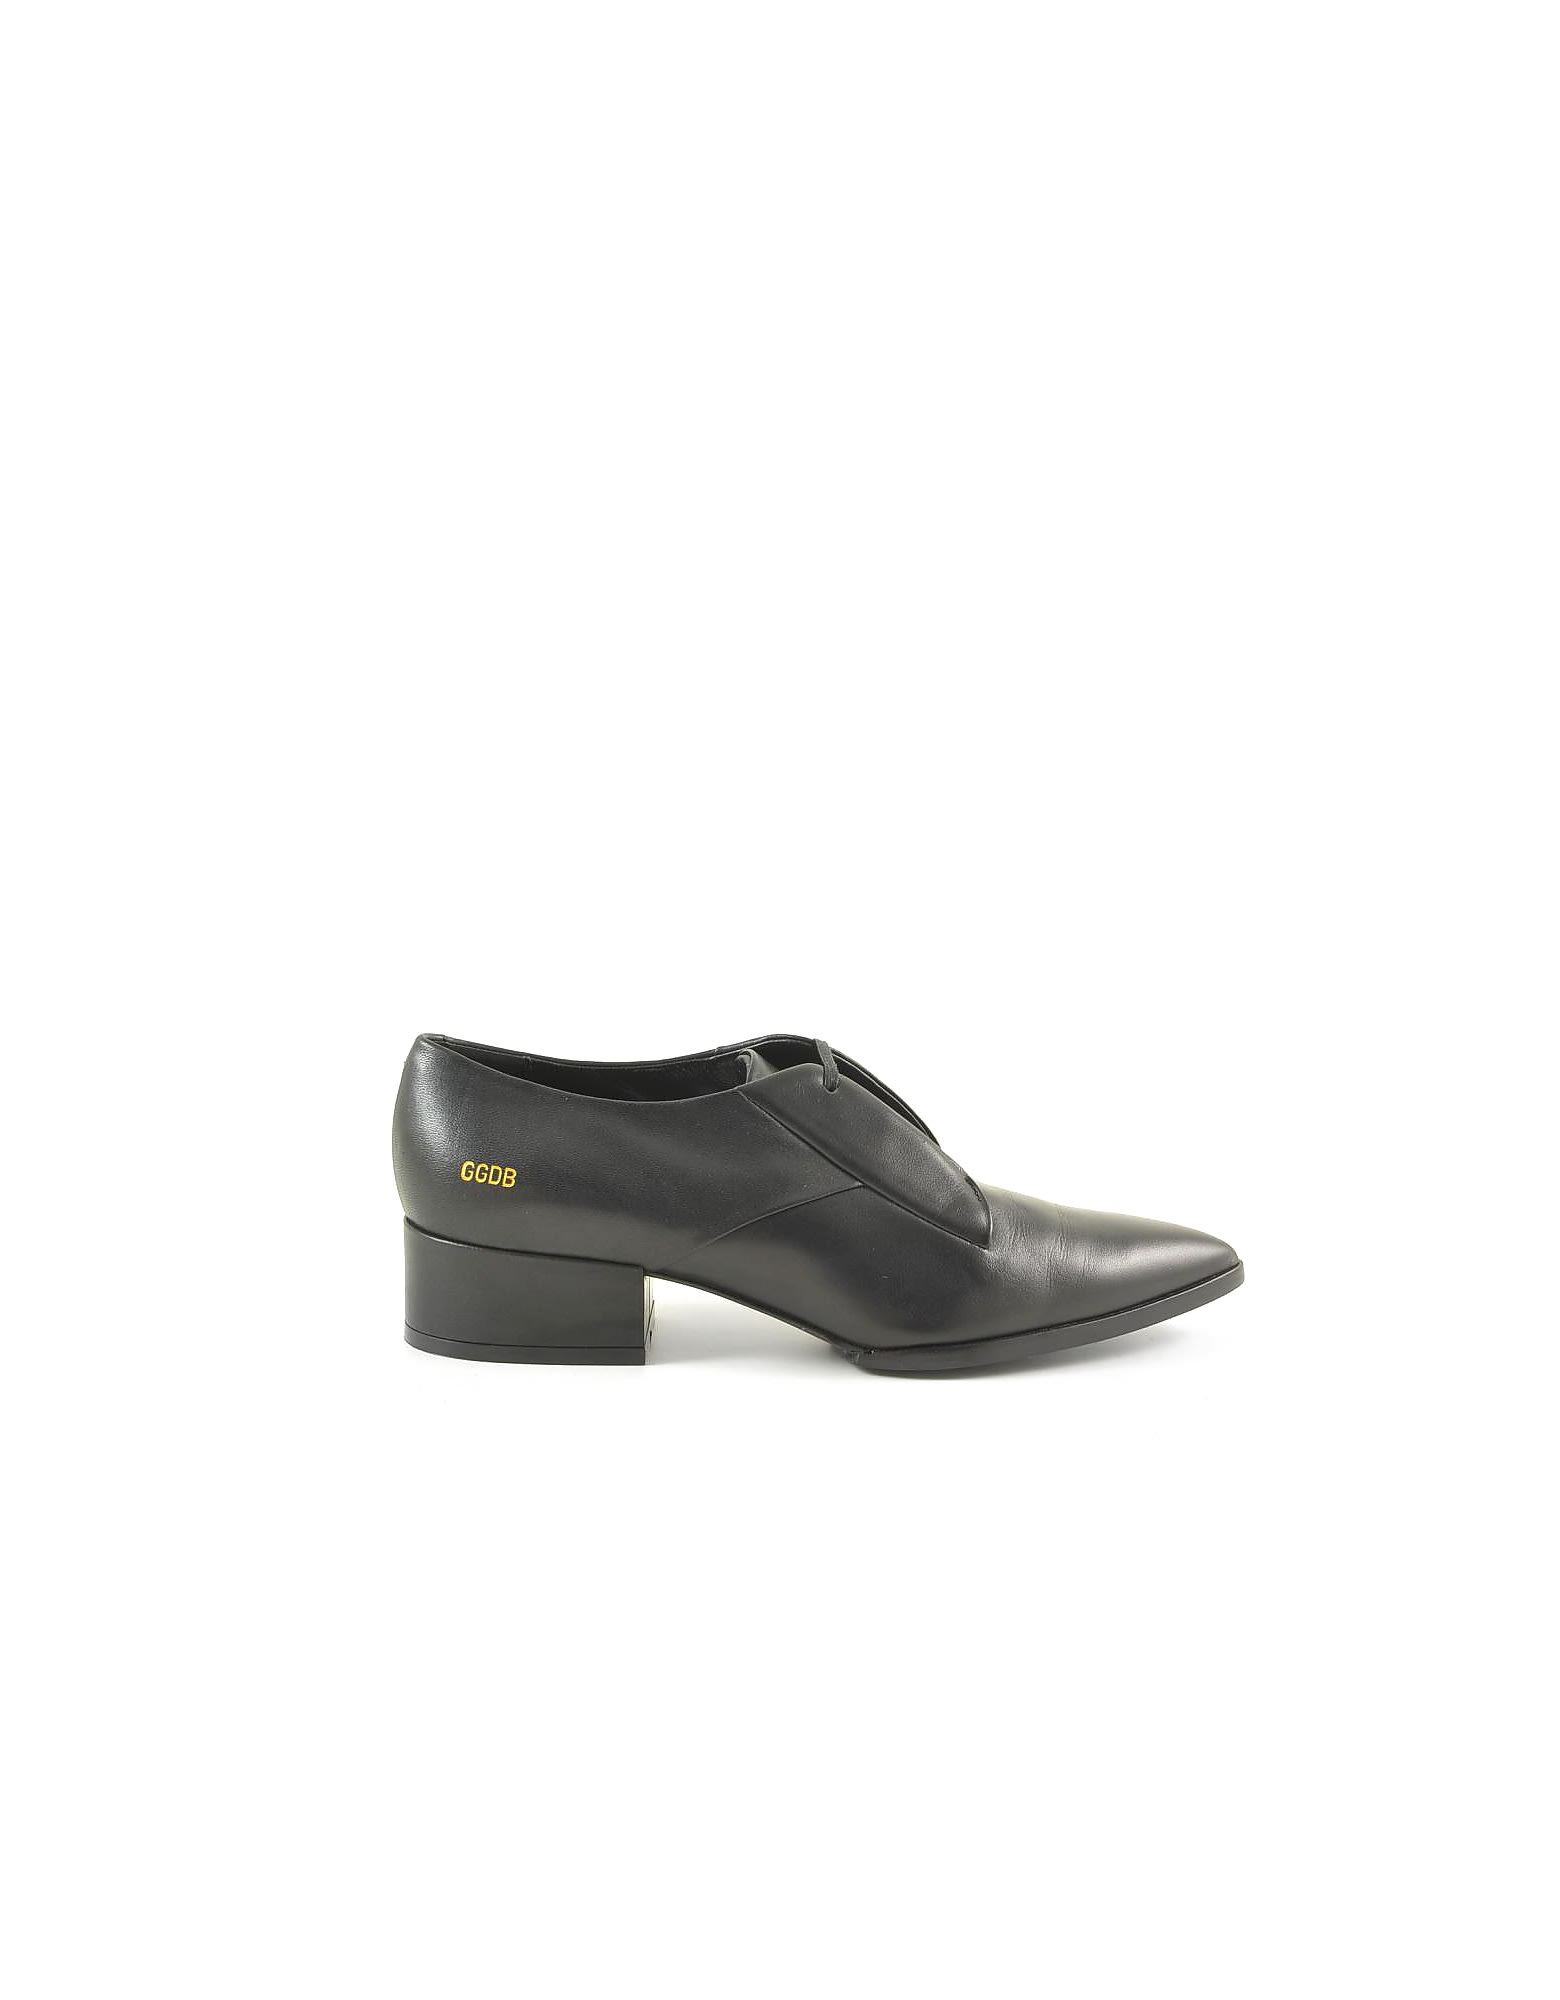 Buy Golden Goose Black Leather Pointy Oxford Shoes online, shop Golden Goose shoes with free shipping